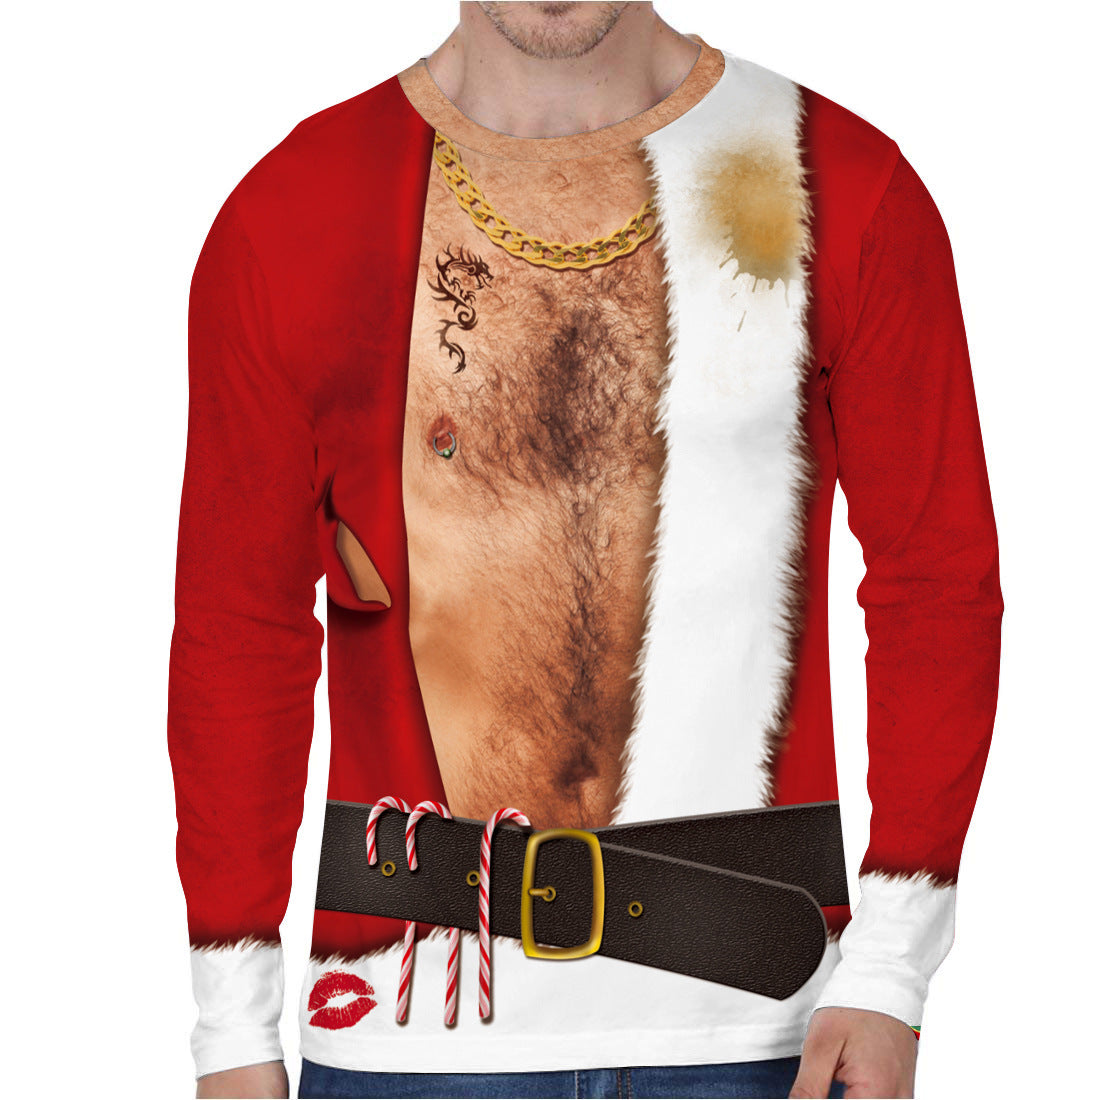 Faux Chest Hair Print Funny Ugly Christmas Long Sleeve T-shirt